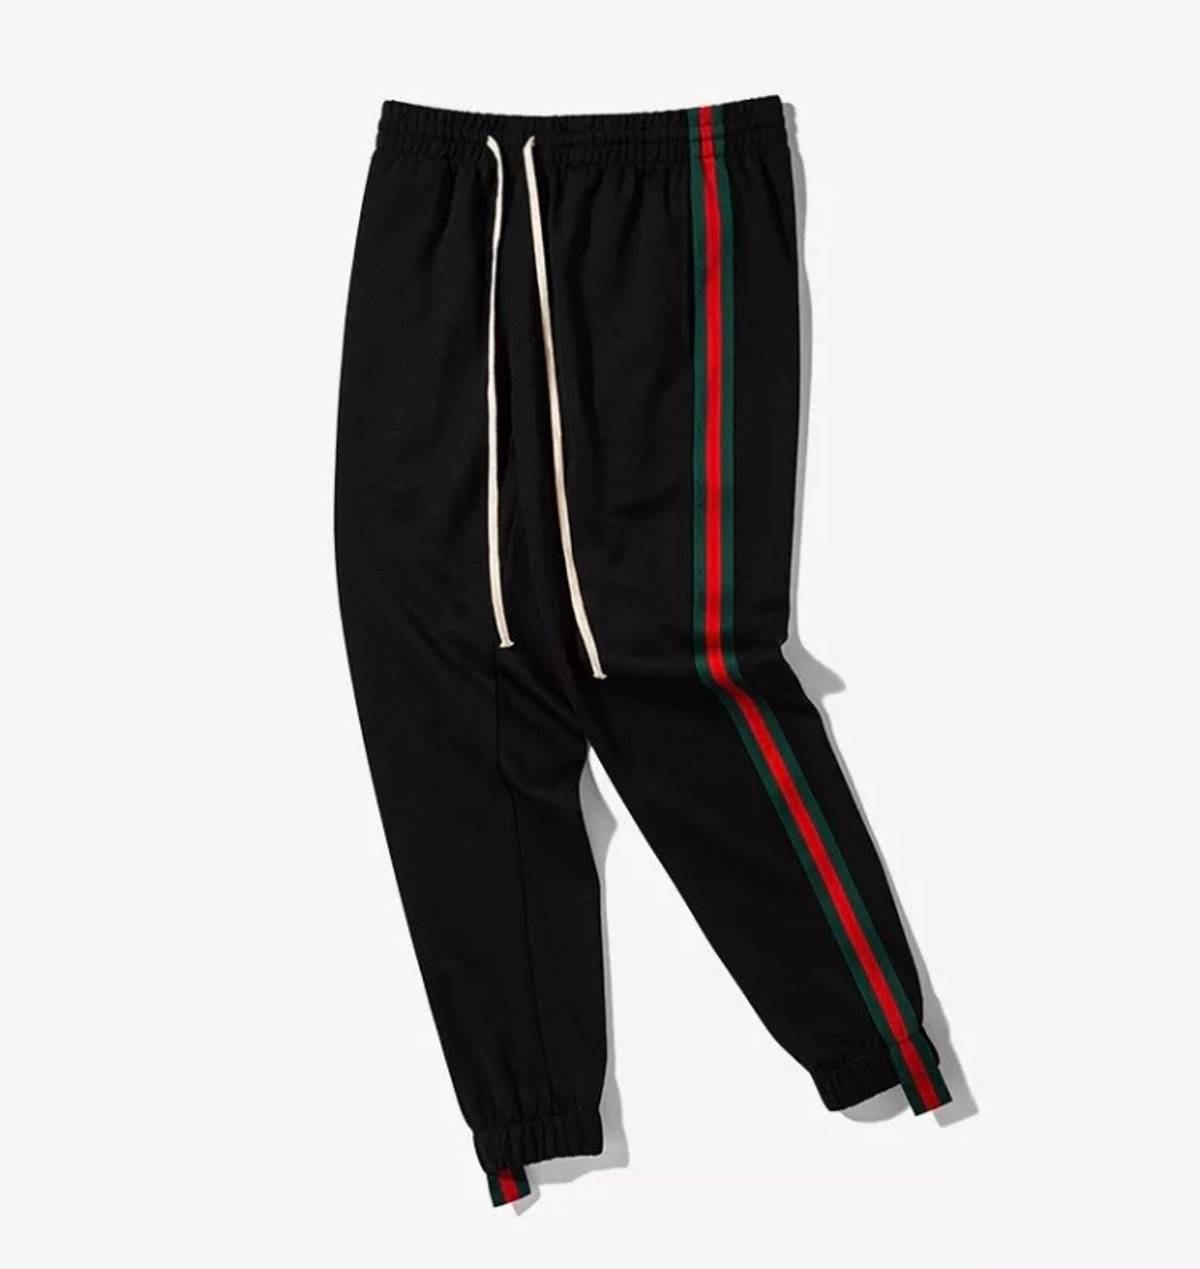 2cb0f63d8124d6 Vintage Gucci Inspired Track Pants | Grailed